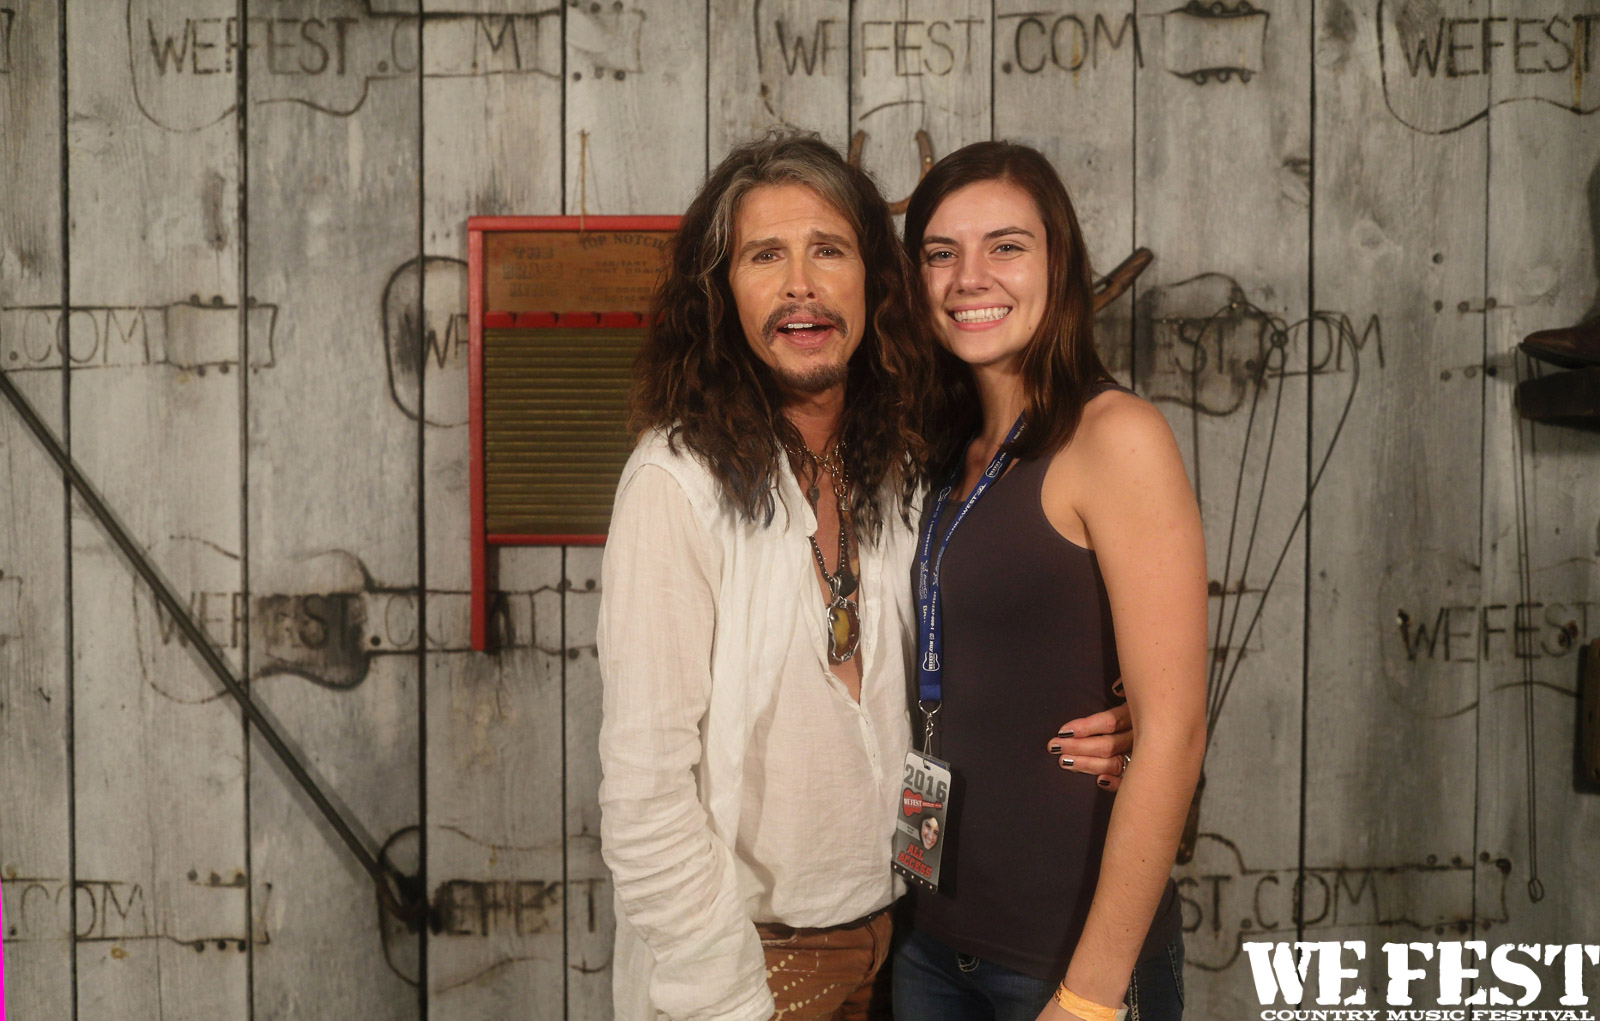 PHOTOS: Steven Tyler Meet and Greet | WE Fest